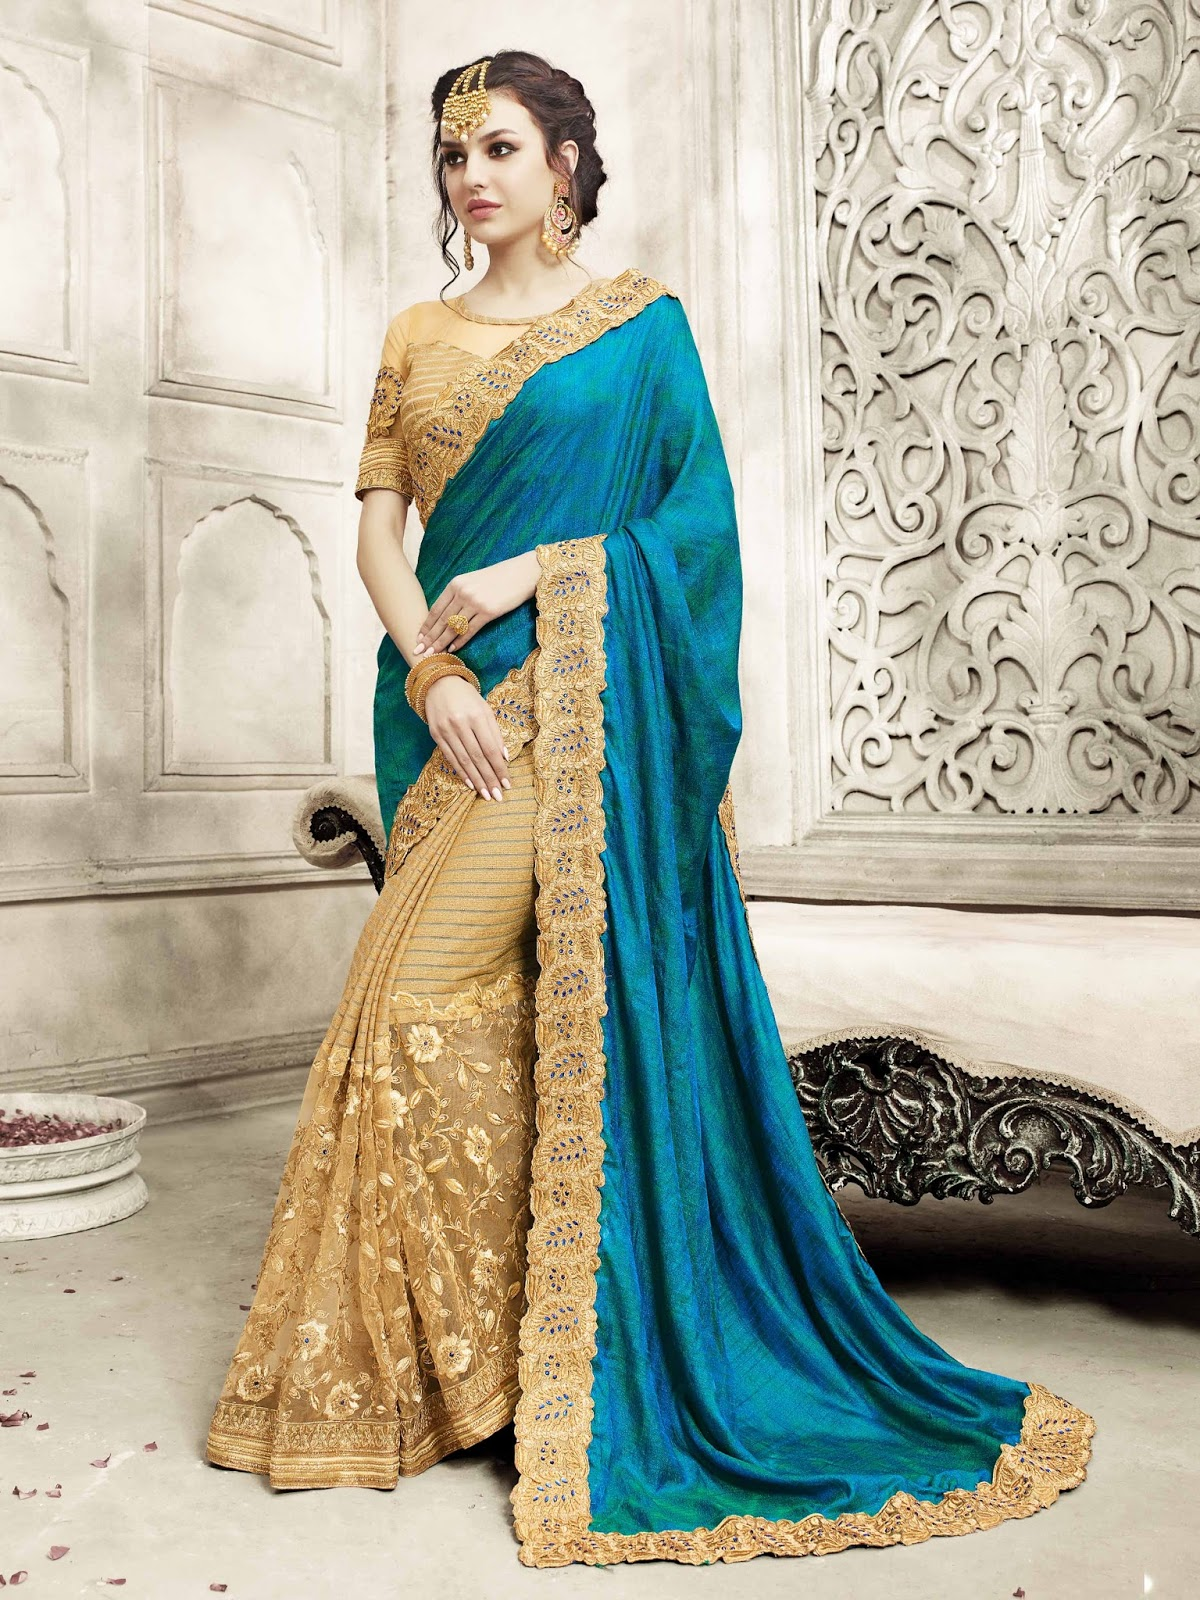 Kayra 2 – Wedding Collection Elegant Designer Saree